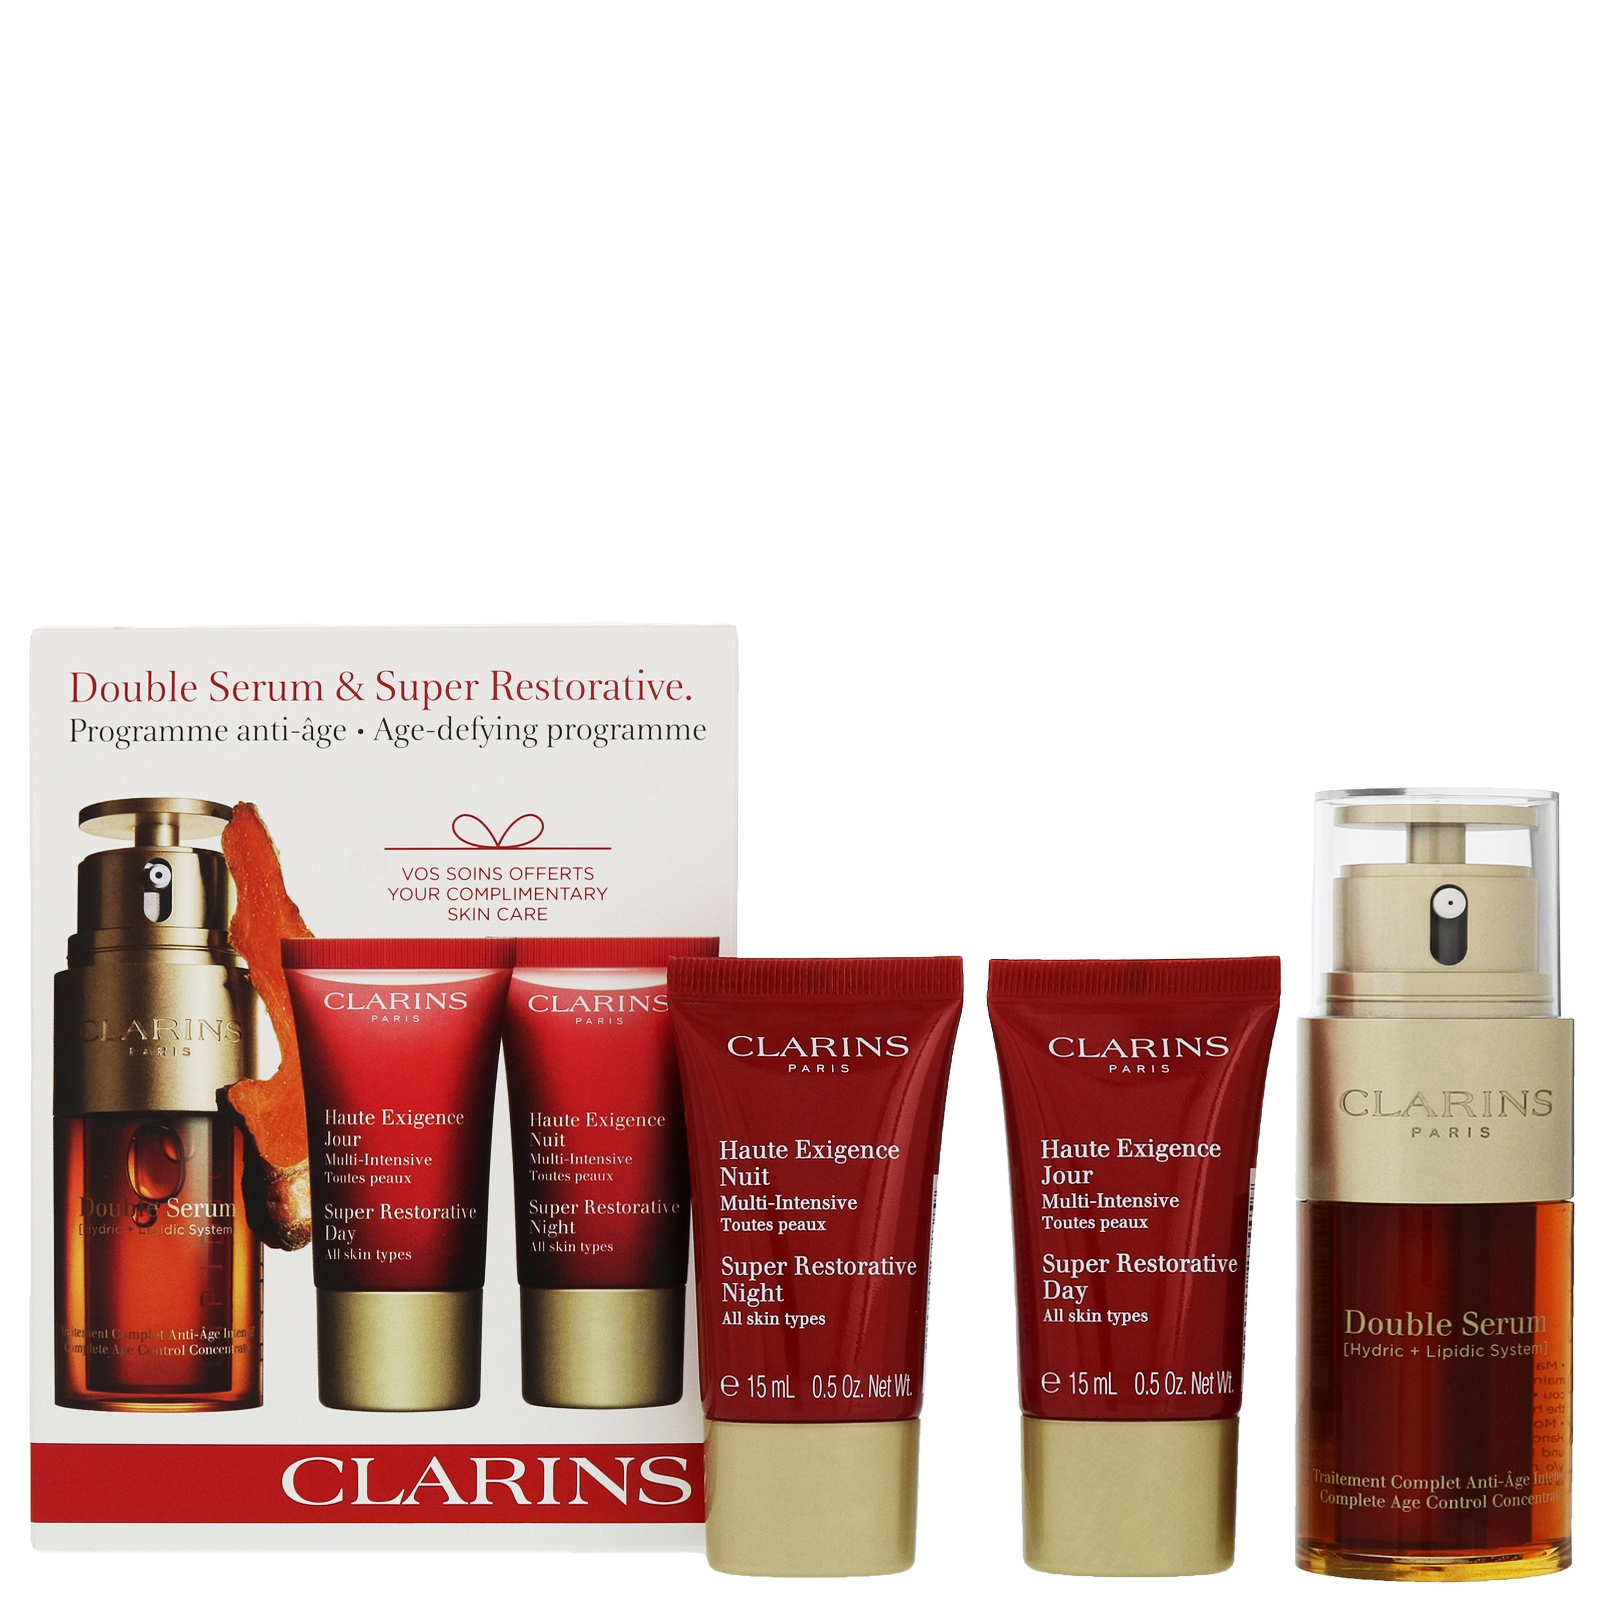 Clarins Gifts & Sets Double Serum 30ml, Multi Intensive Day Cream 15ml & Multi Intensive Night Cream 15ml